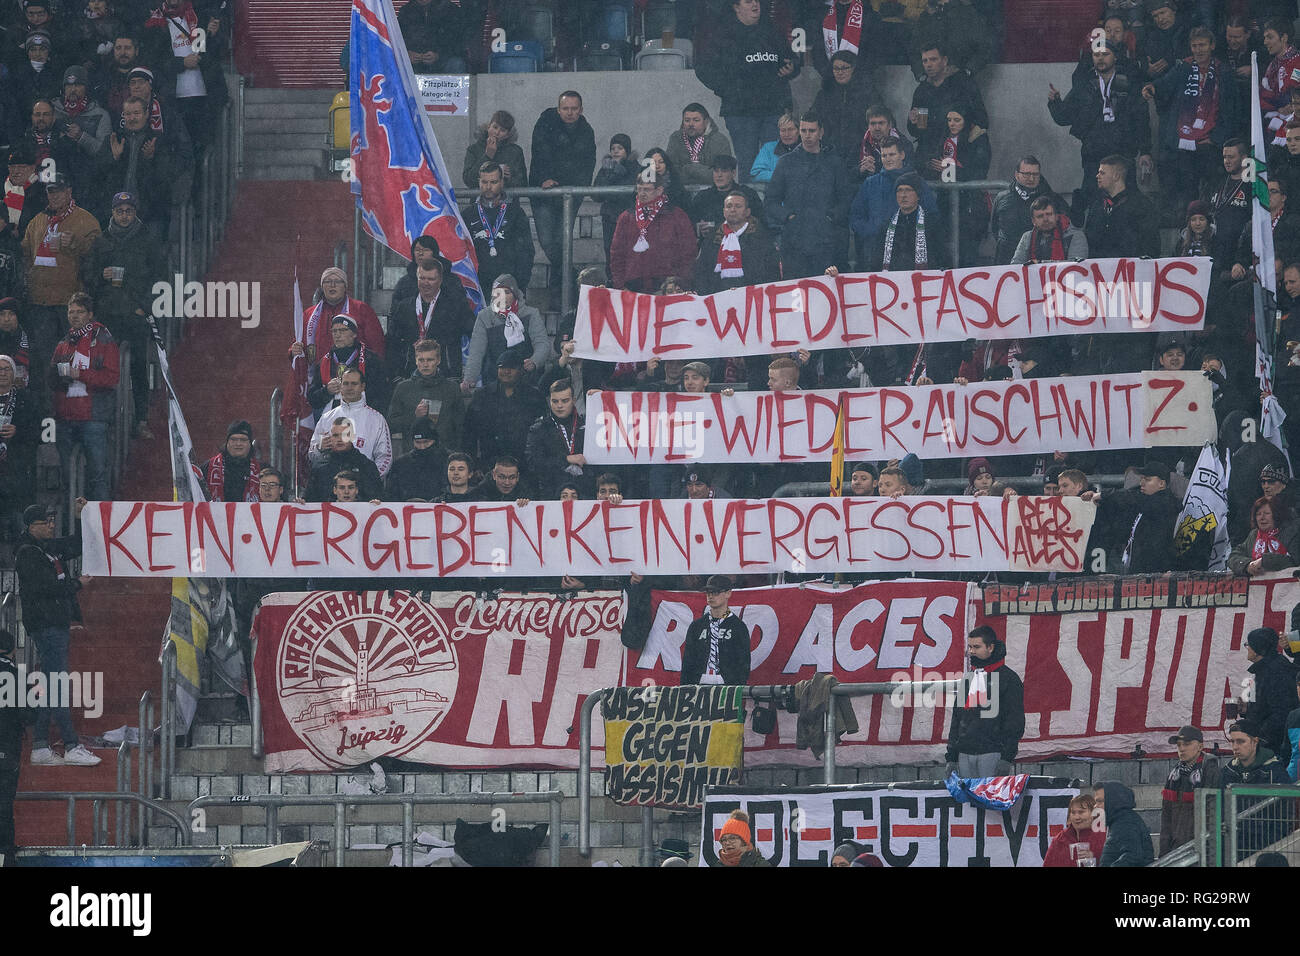 Düsseldorf, Germany. 27th January 2019.Soccer: Bundesliga, Fortuna Düsseldorf - RB Leipzig, 19th matchday. Leipzig's fans are holding up banners against racism. Photo: Marius Becker/dpa - IMPORTANT NOTE: In accordance with the requirements of the DFL Deutsche Fußball Liga or the DFB Deutscher Fußball-Bund, it is prohibited to use or have used photographs taken in the stadium and/or the match in the form of sequence images and/or video-like photo sequences. Credit: dpa picture alliance/Alamy Live News - Stock Image